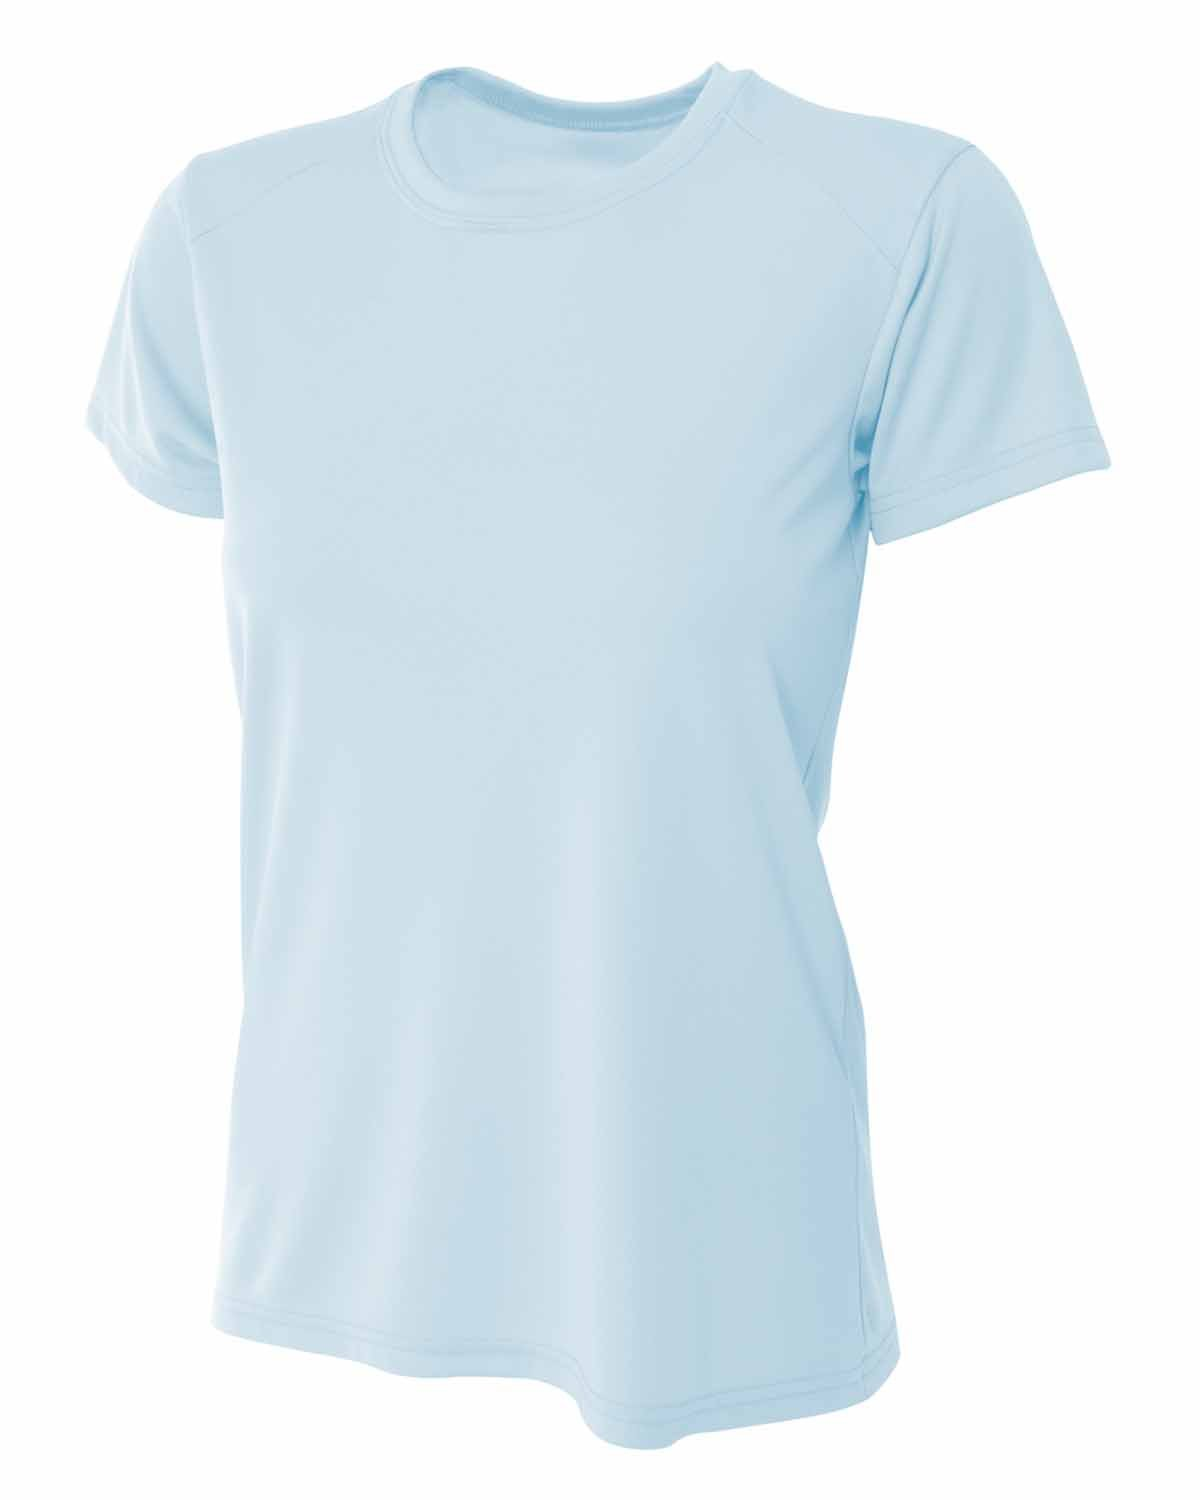 A4 Ladies' Cooling Performance T-Shirt PASTEL BLUE